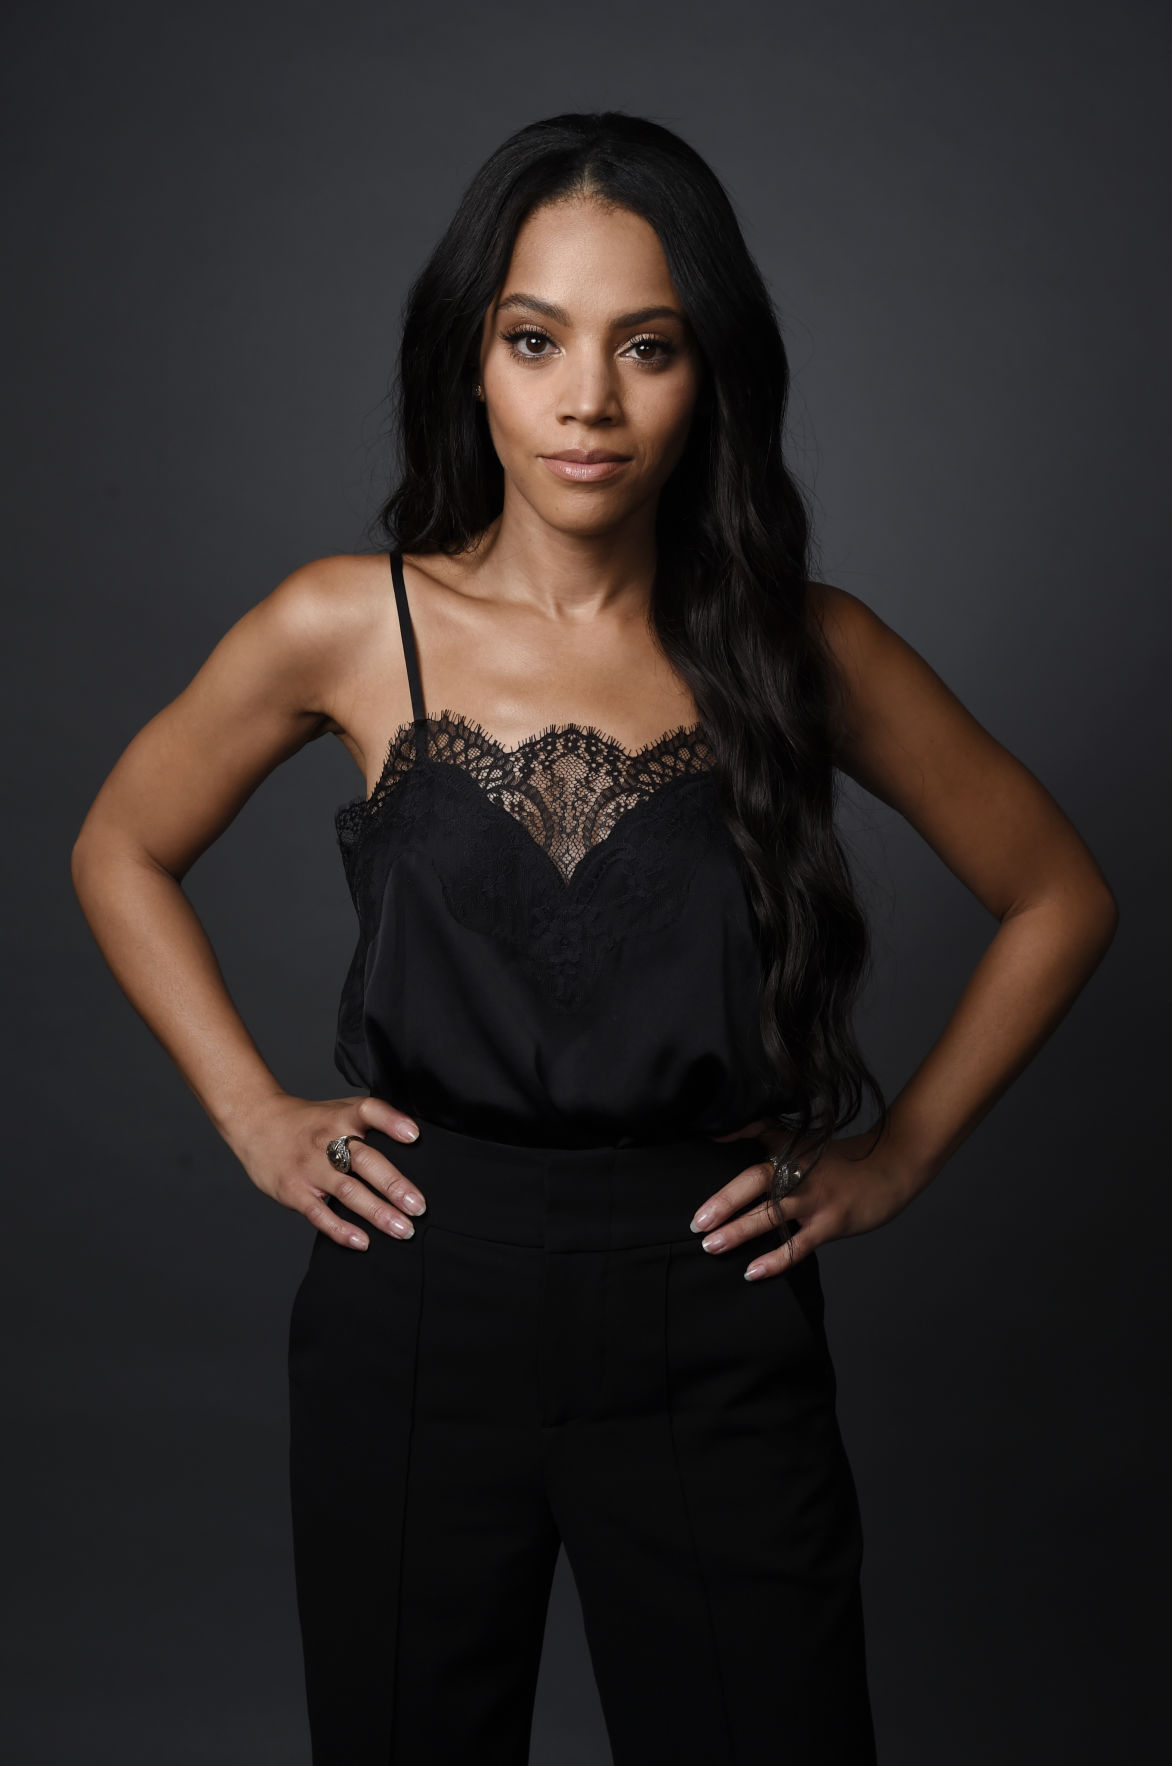 Bianca Lawson, African American Actress, Black Actress, KOLUMN Magazine, KOLUMN